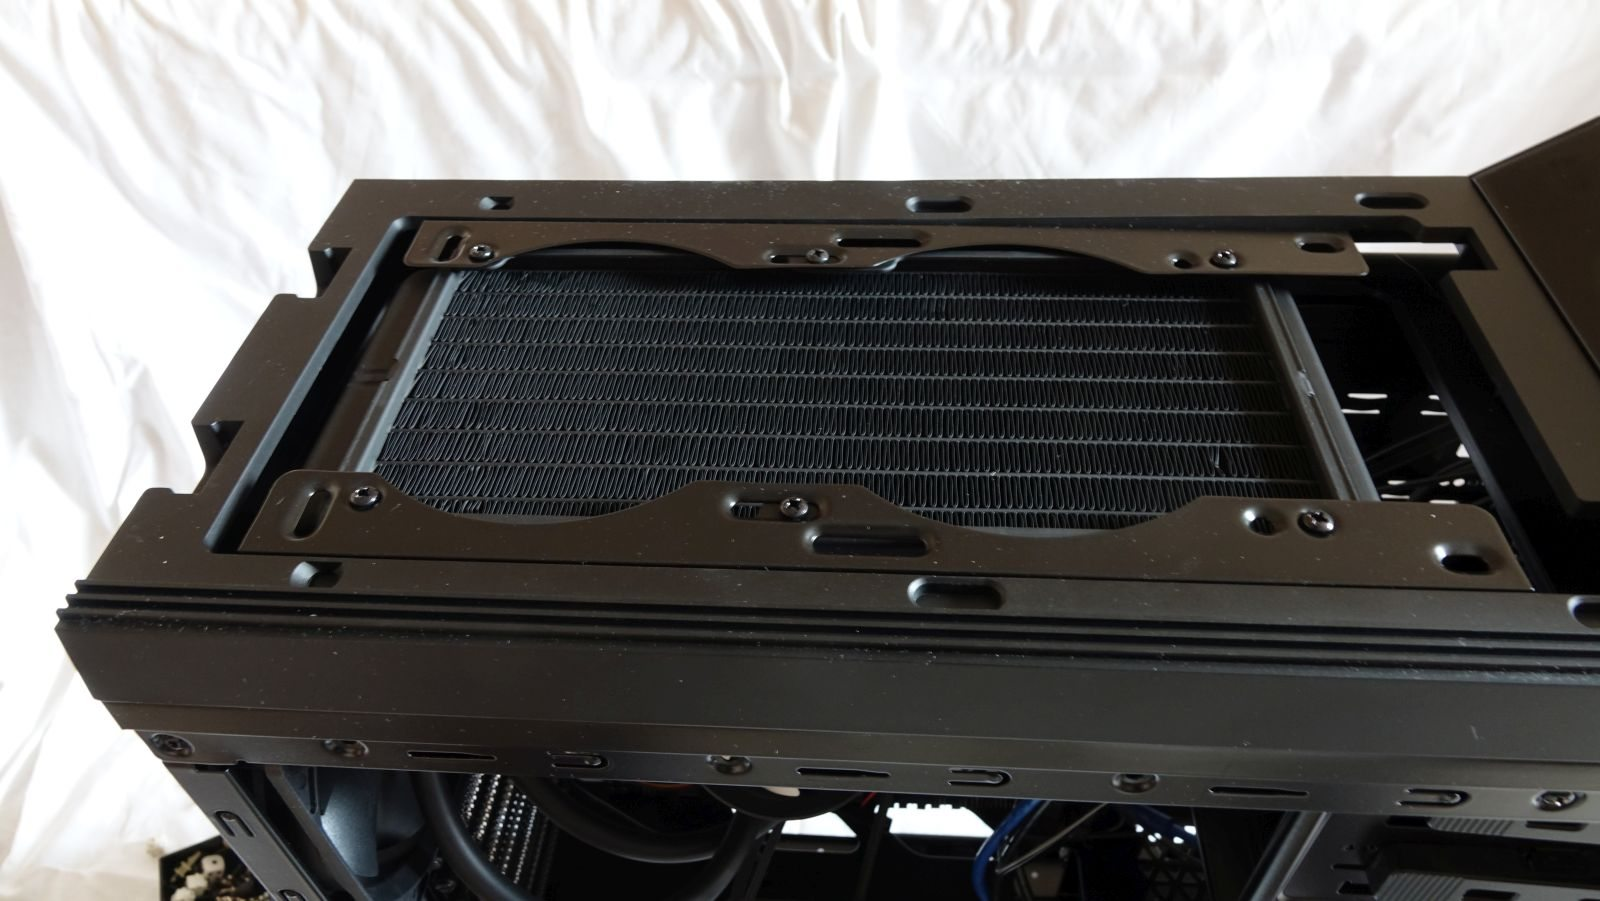 Cryorig A40 Ultimate radiator in deepcool case